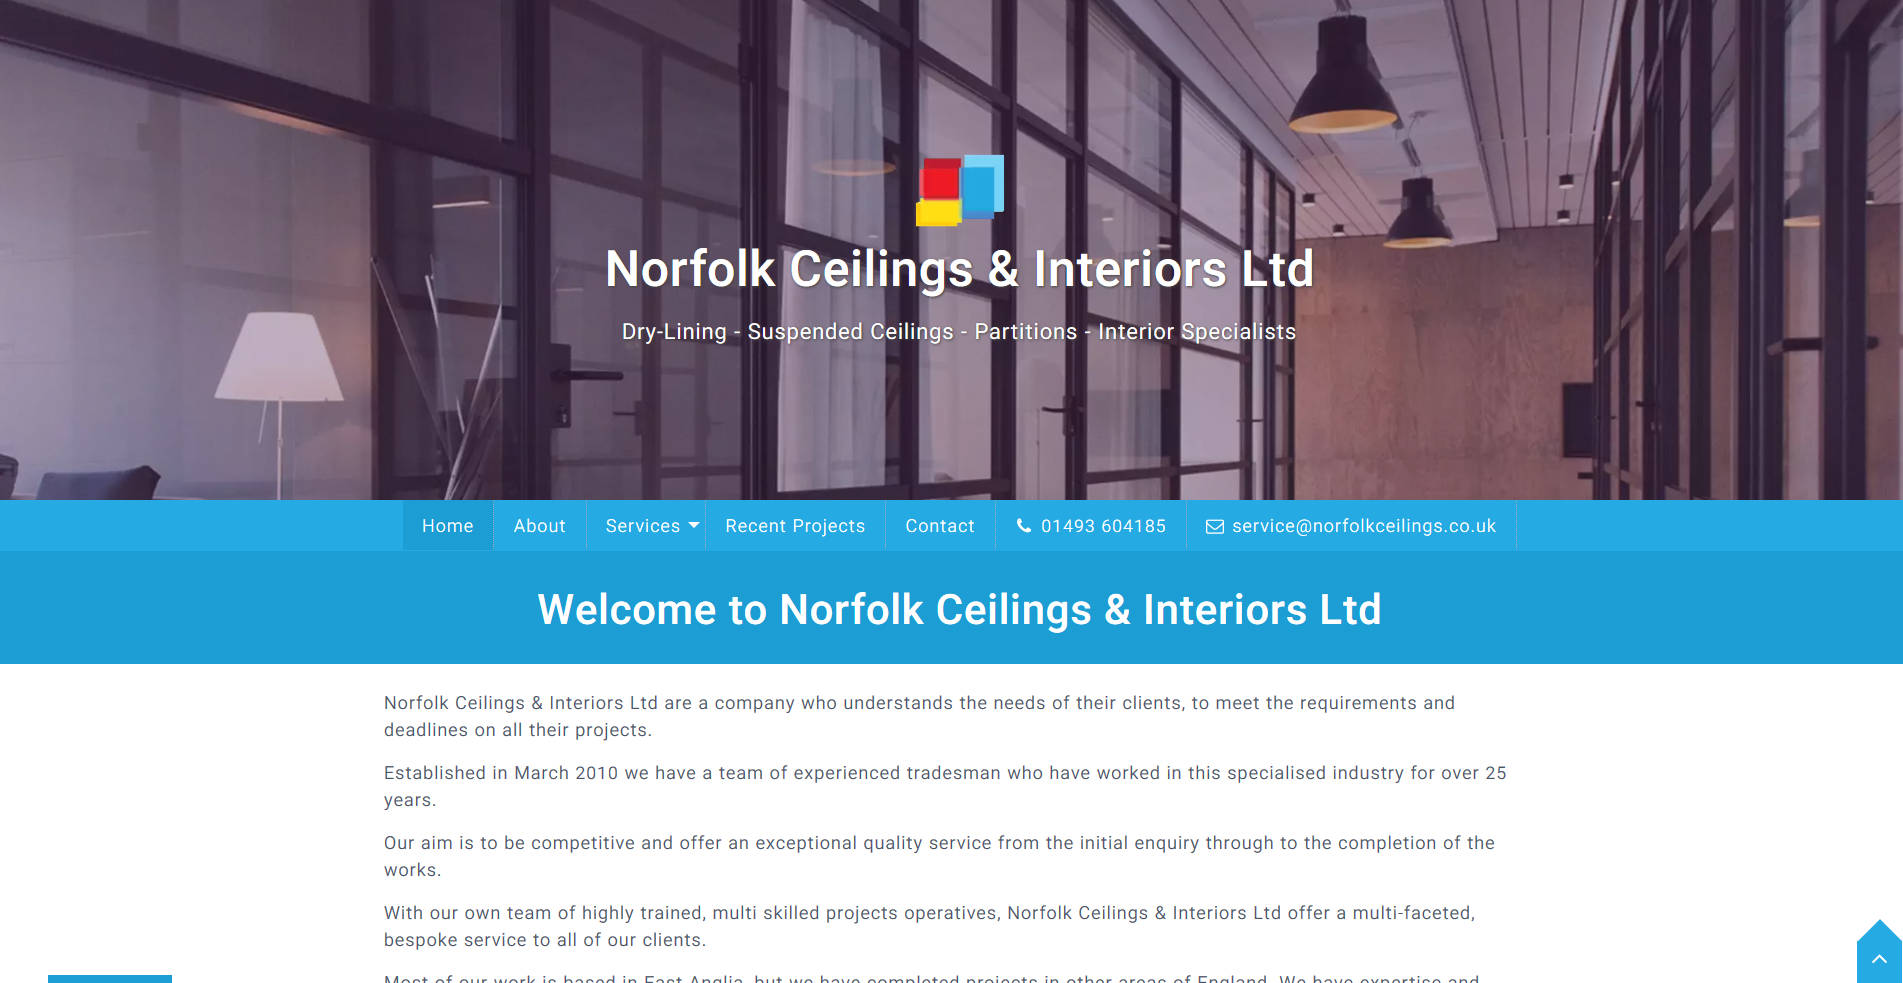 Frontpage view of Norfolk Ceilings & Interiors website.